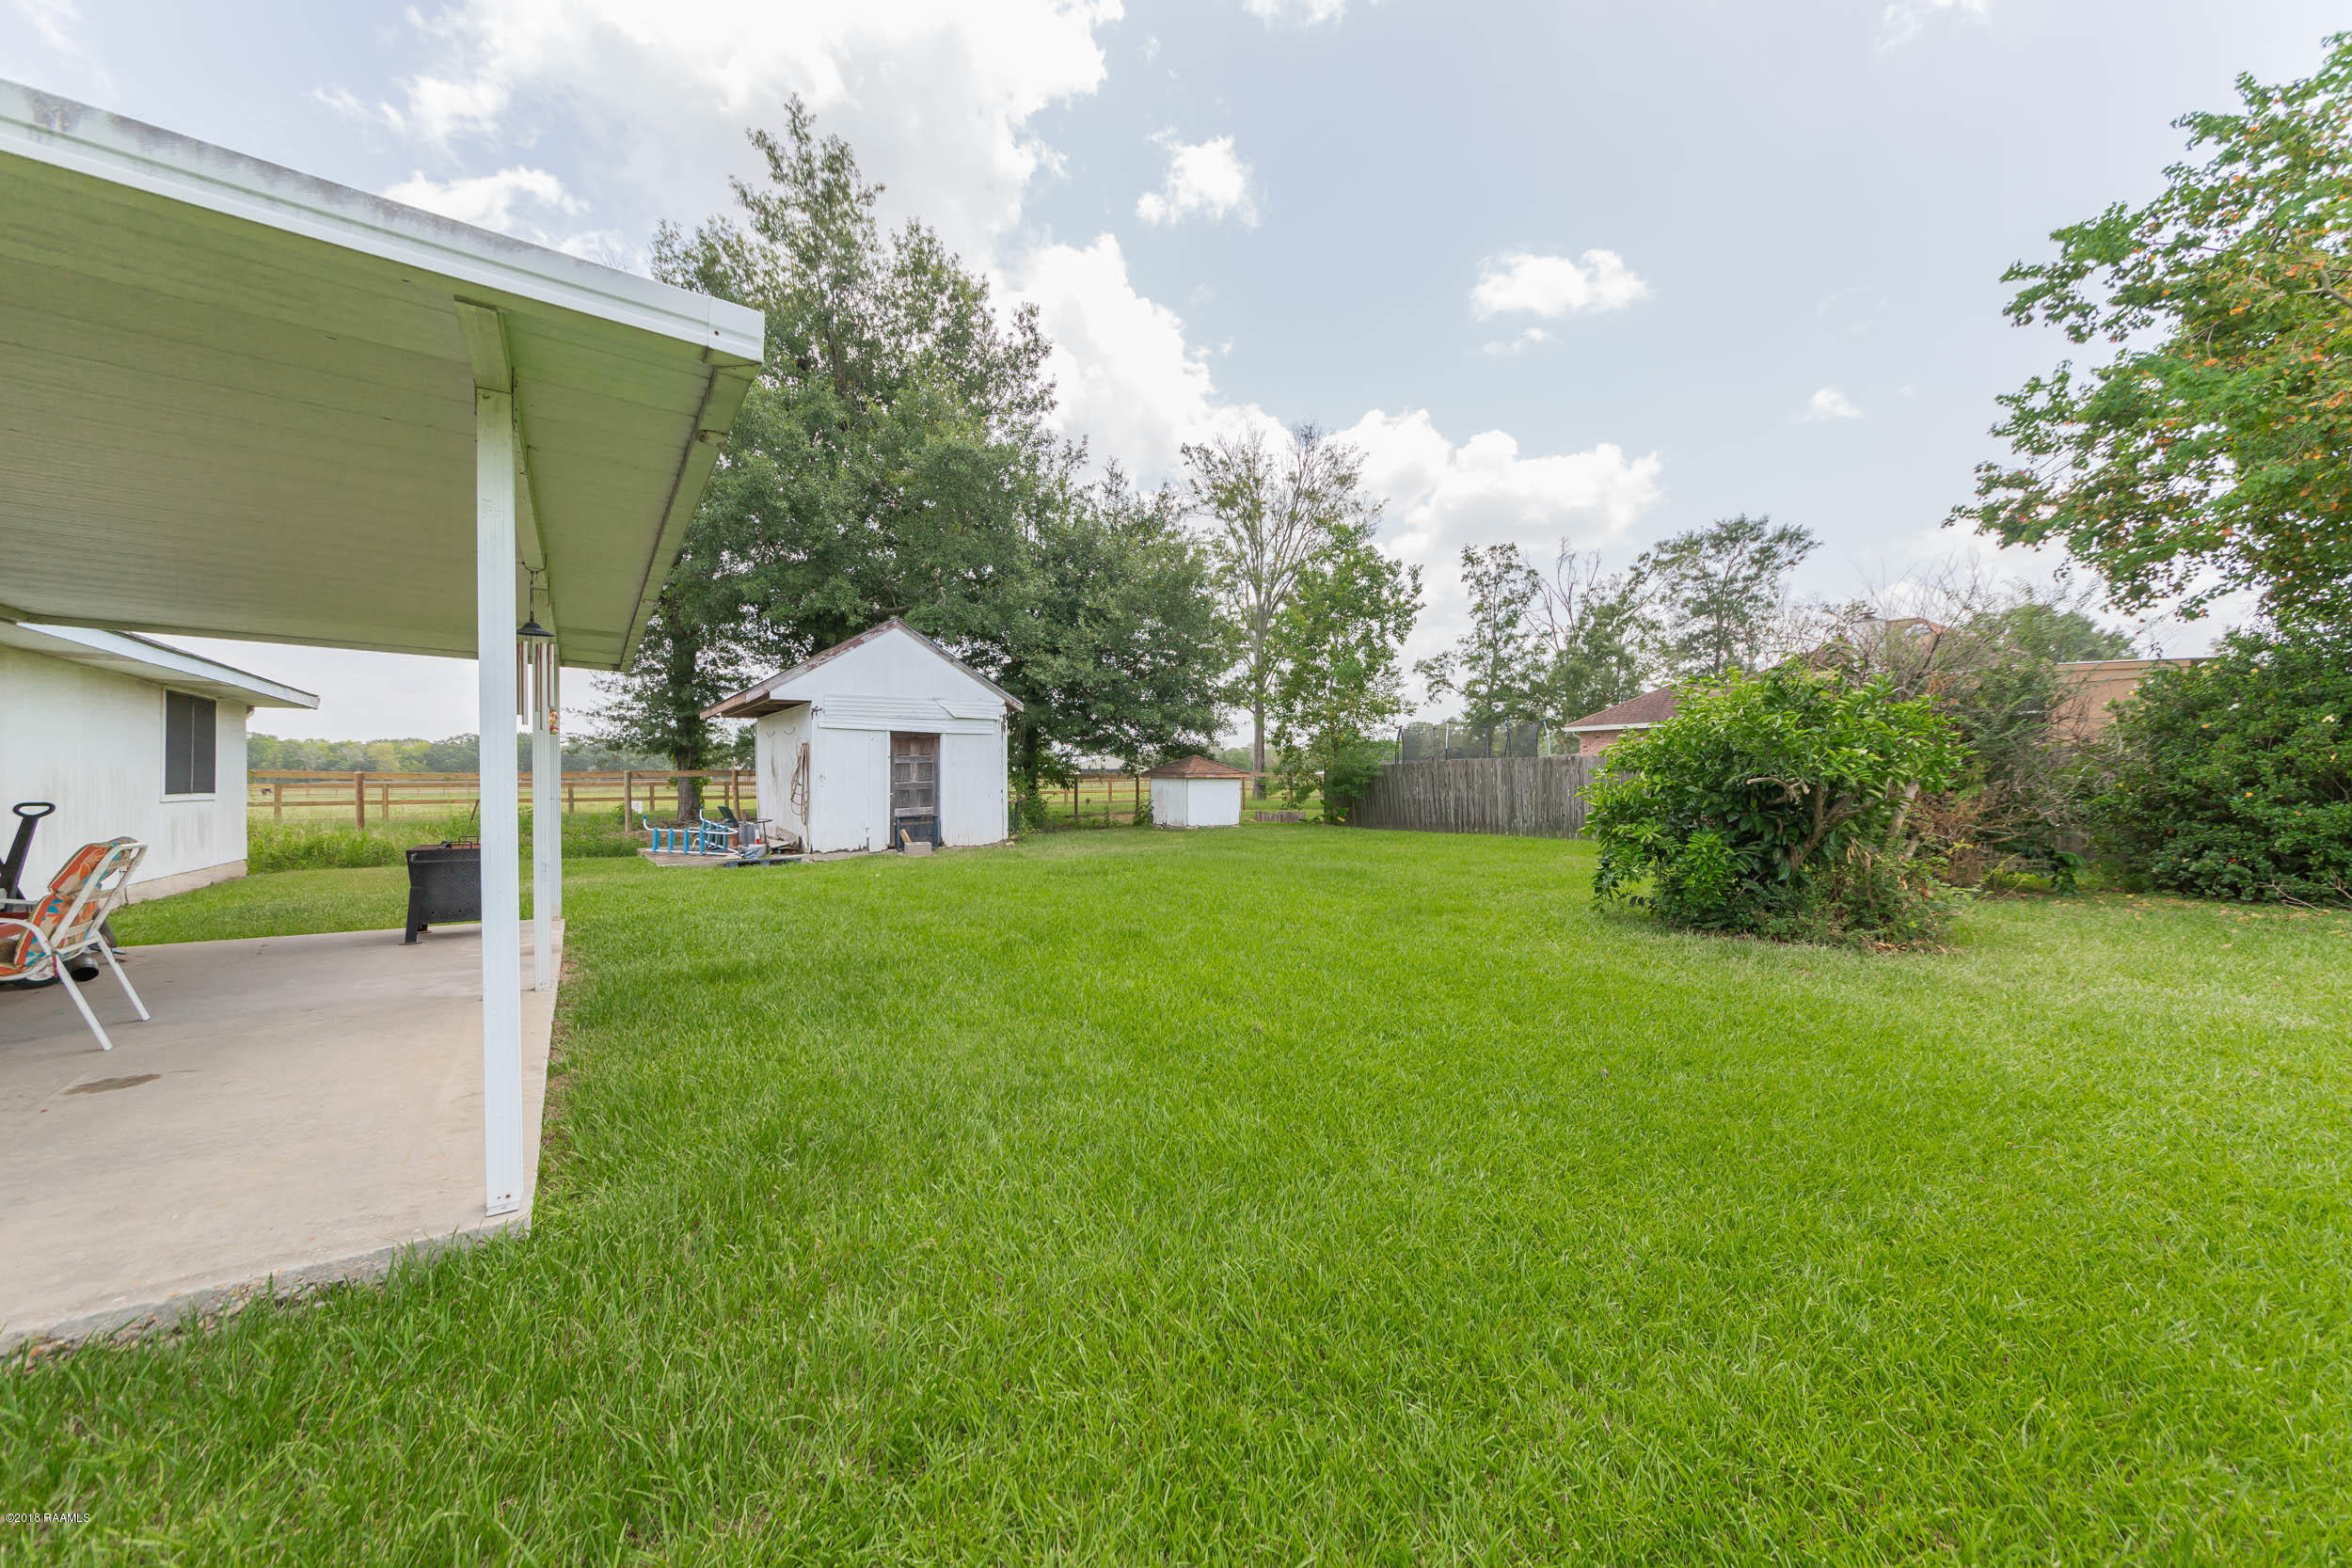 126 Bermuda Circle, Scott, LA 70583 Photo #5